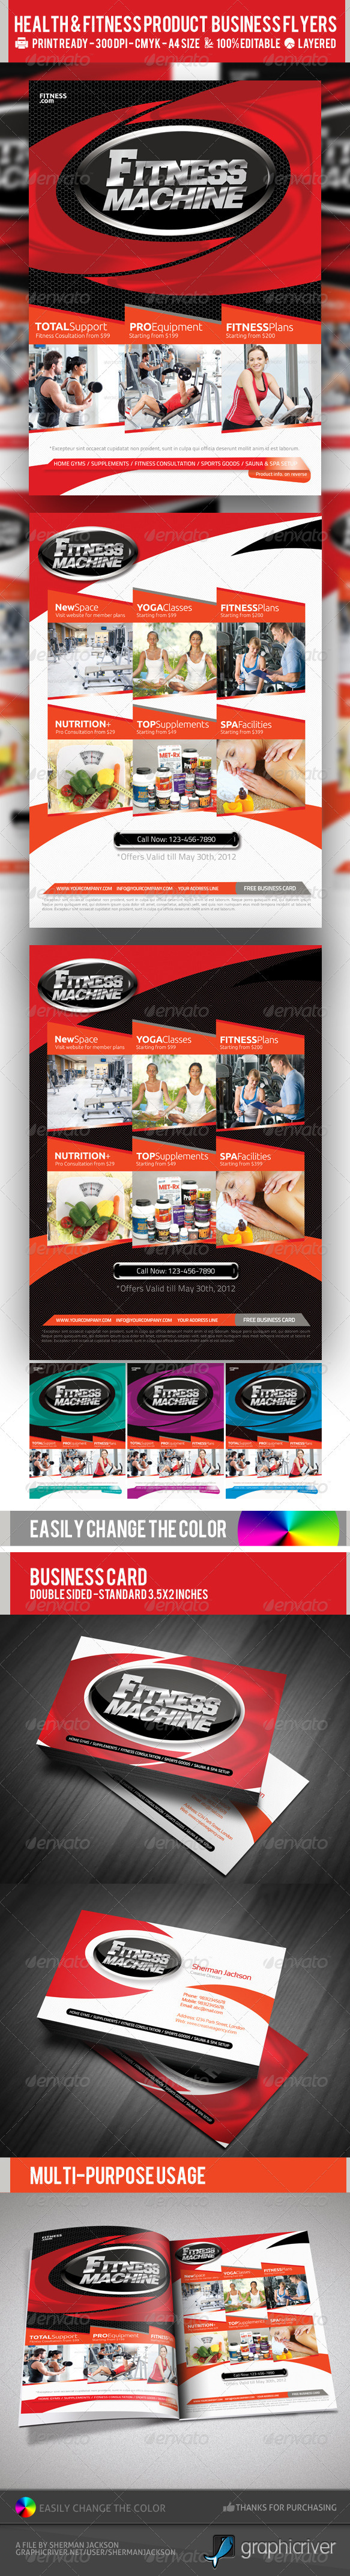 Multipurpose Fitness or Product Flyer PSD Template